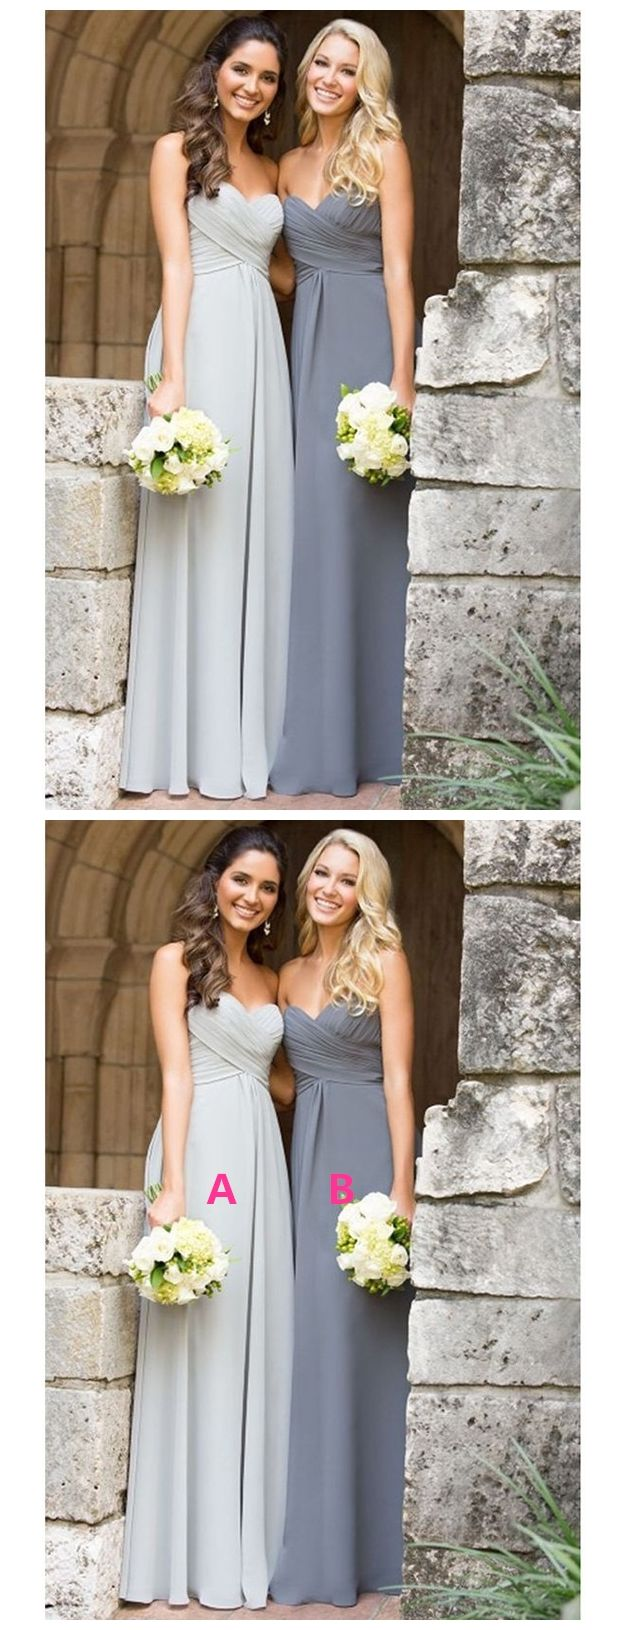 Strapless long chiffon sweetheart grey mismatched bridesmaid dresses